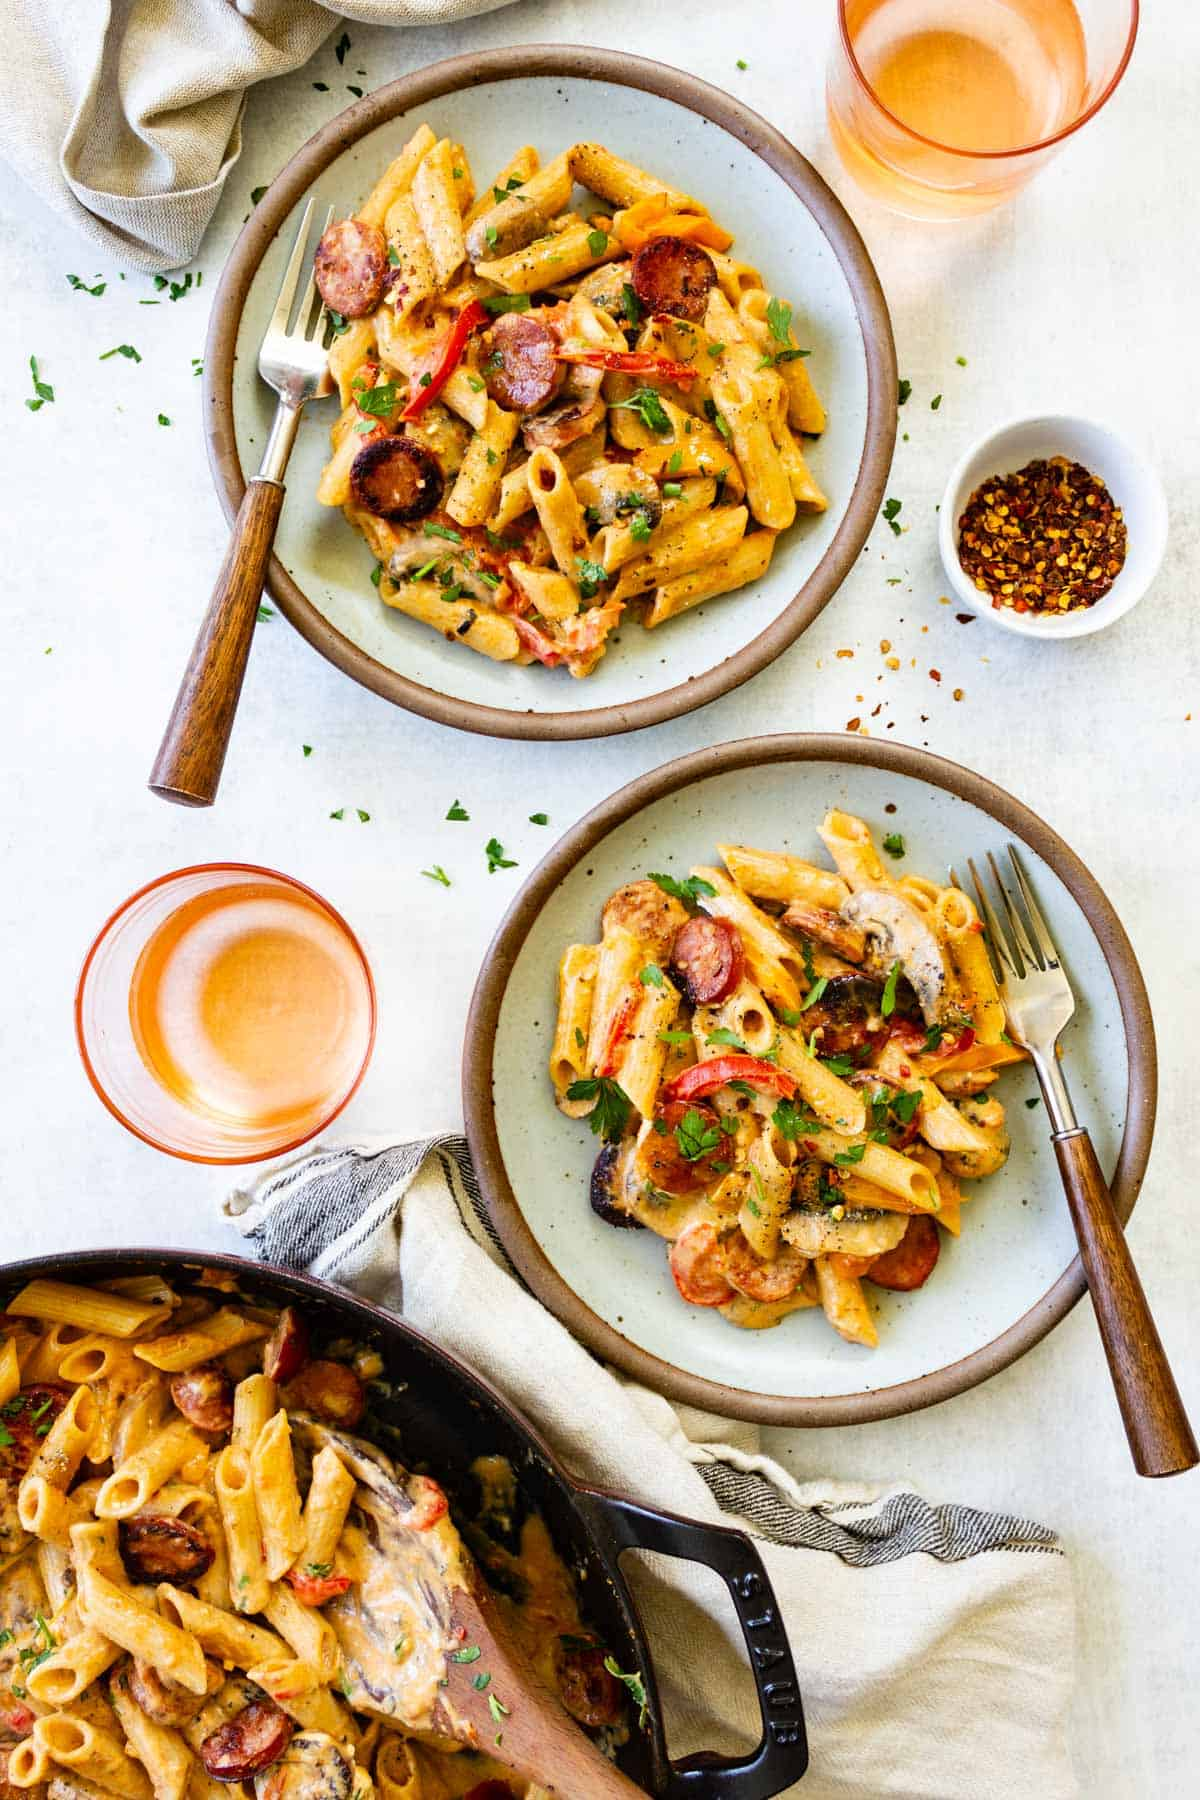 A large skillet of cajun pasta sits on a table with a couple of servings of the meal.